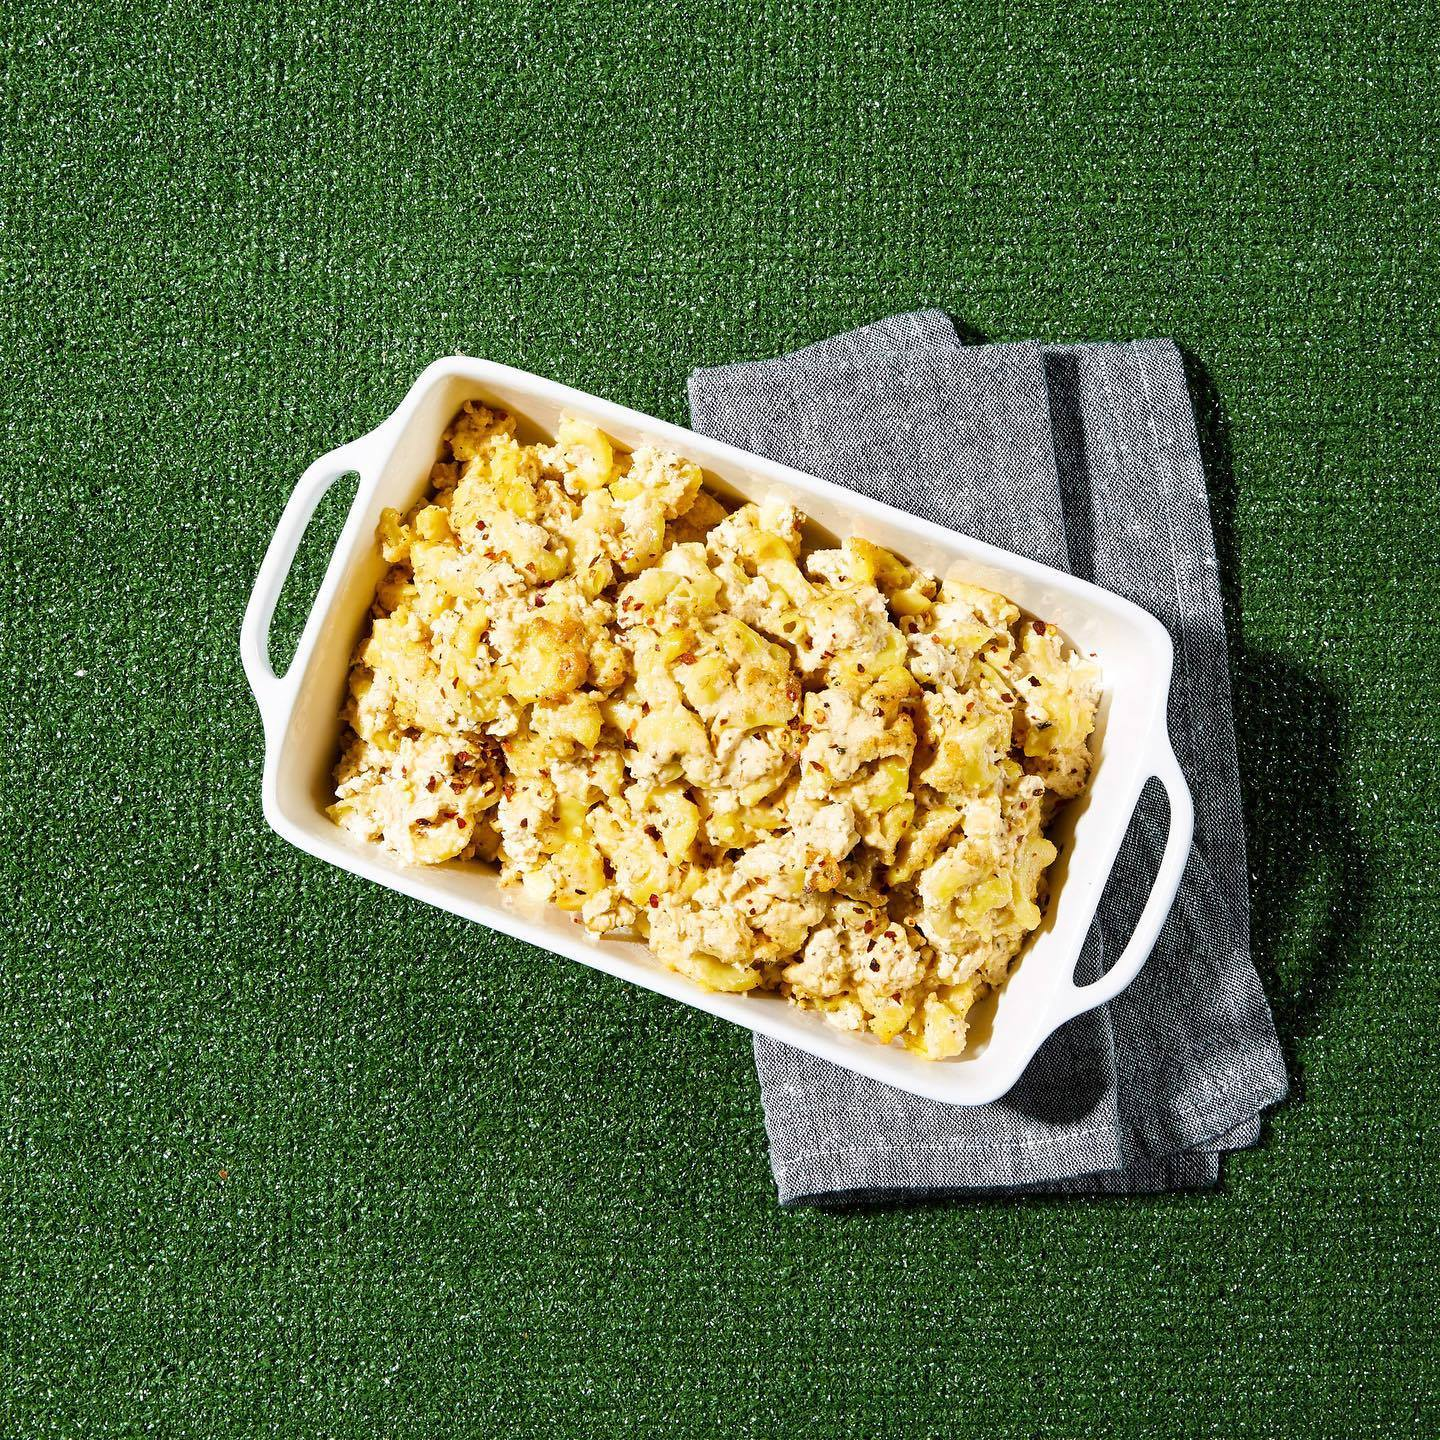 Plum Bistro's mac 'n' cheese twist known as Mac & Yease against a green turf background.